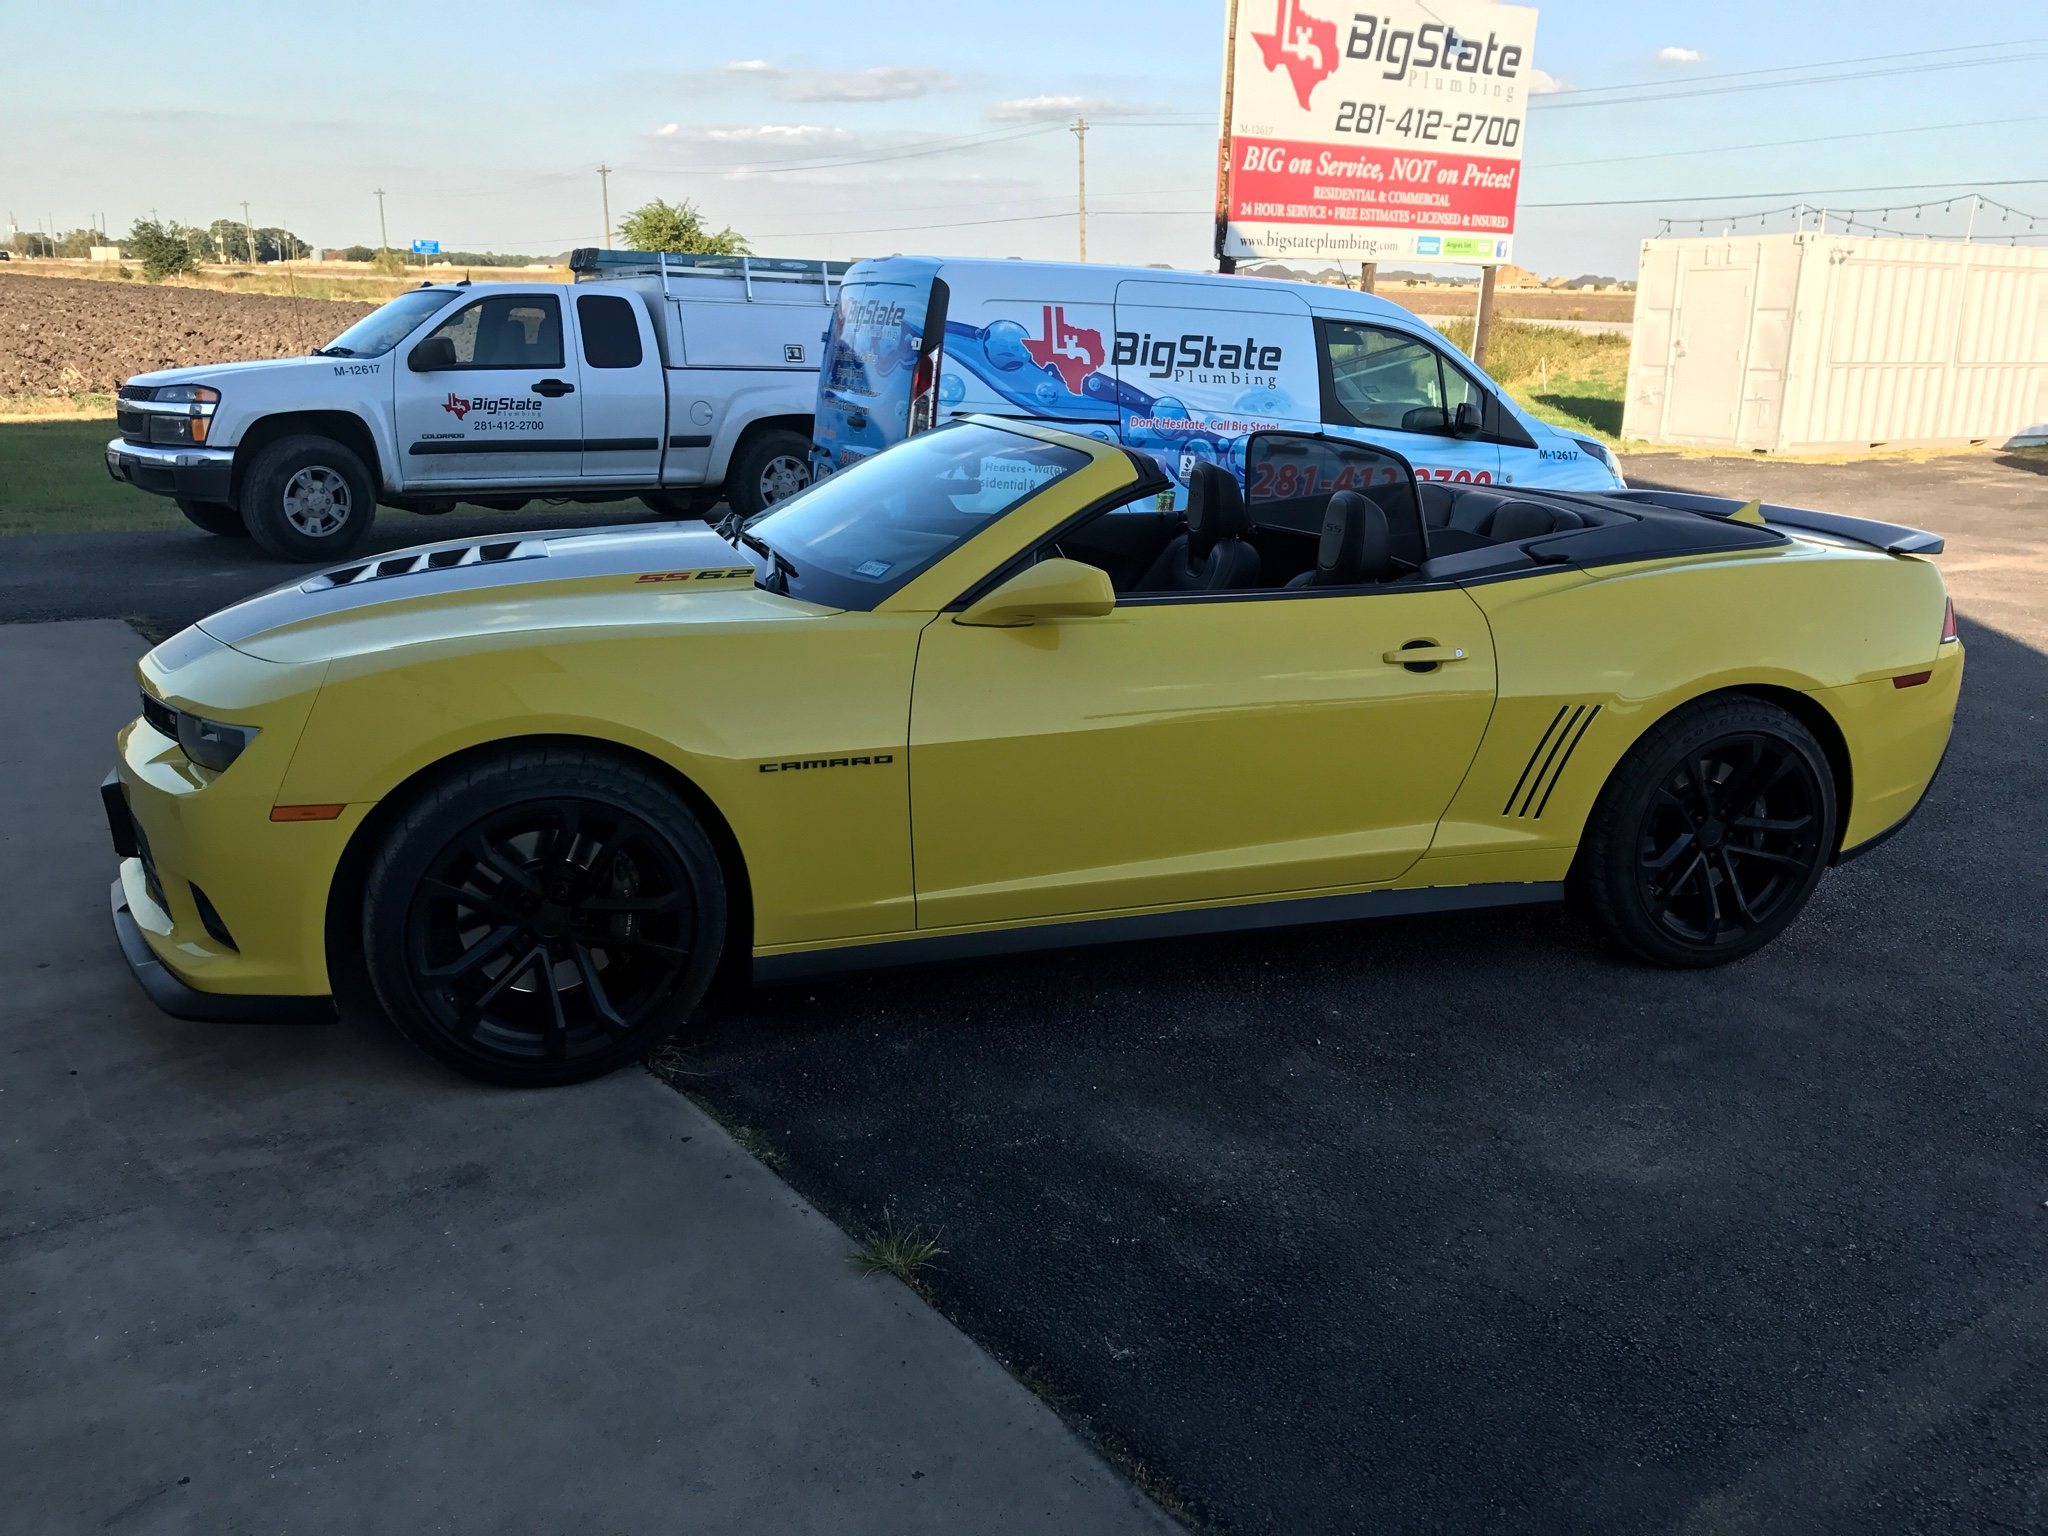 zl1 10 spoke wheels and tires trade and cash houston area oem not replicas camaro5 chevy. Black Bedroom Furniture Sets. Home Design Ideas